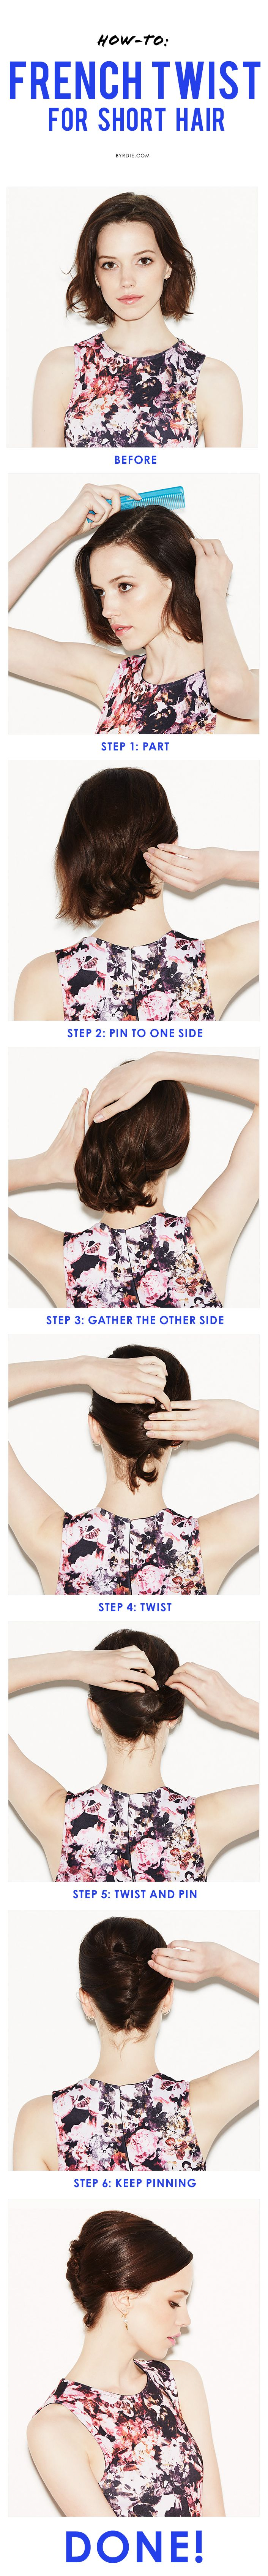 How to create a totally chic French twist on any hair length. (via Byrdie Beauty...